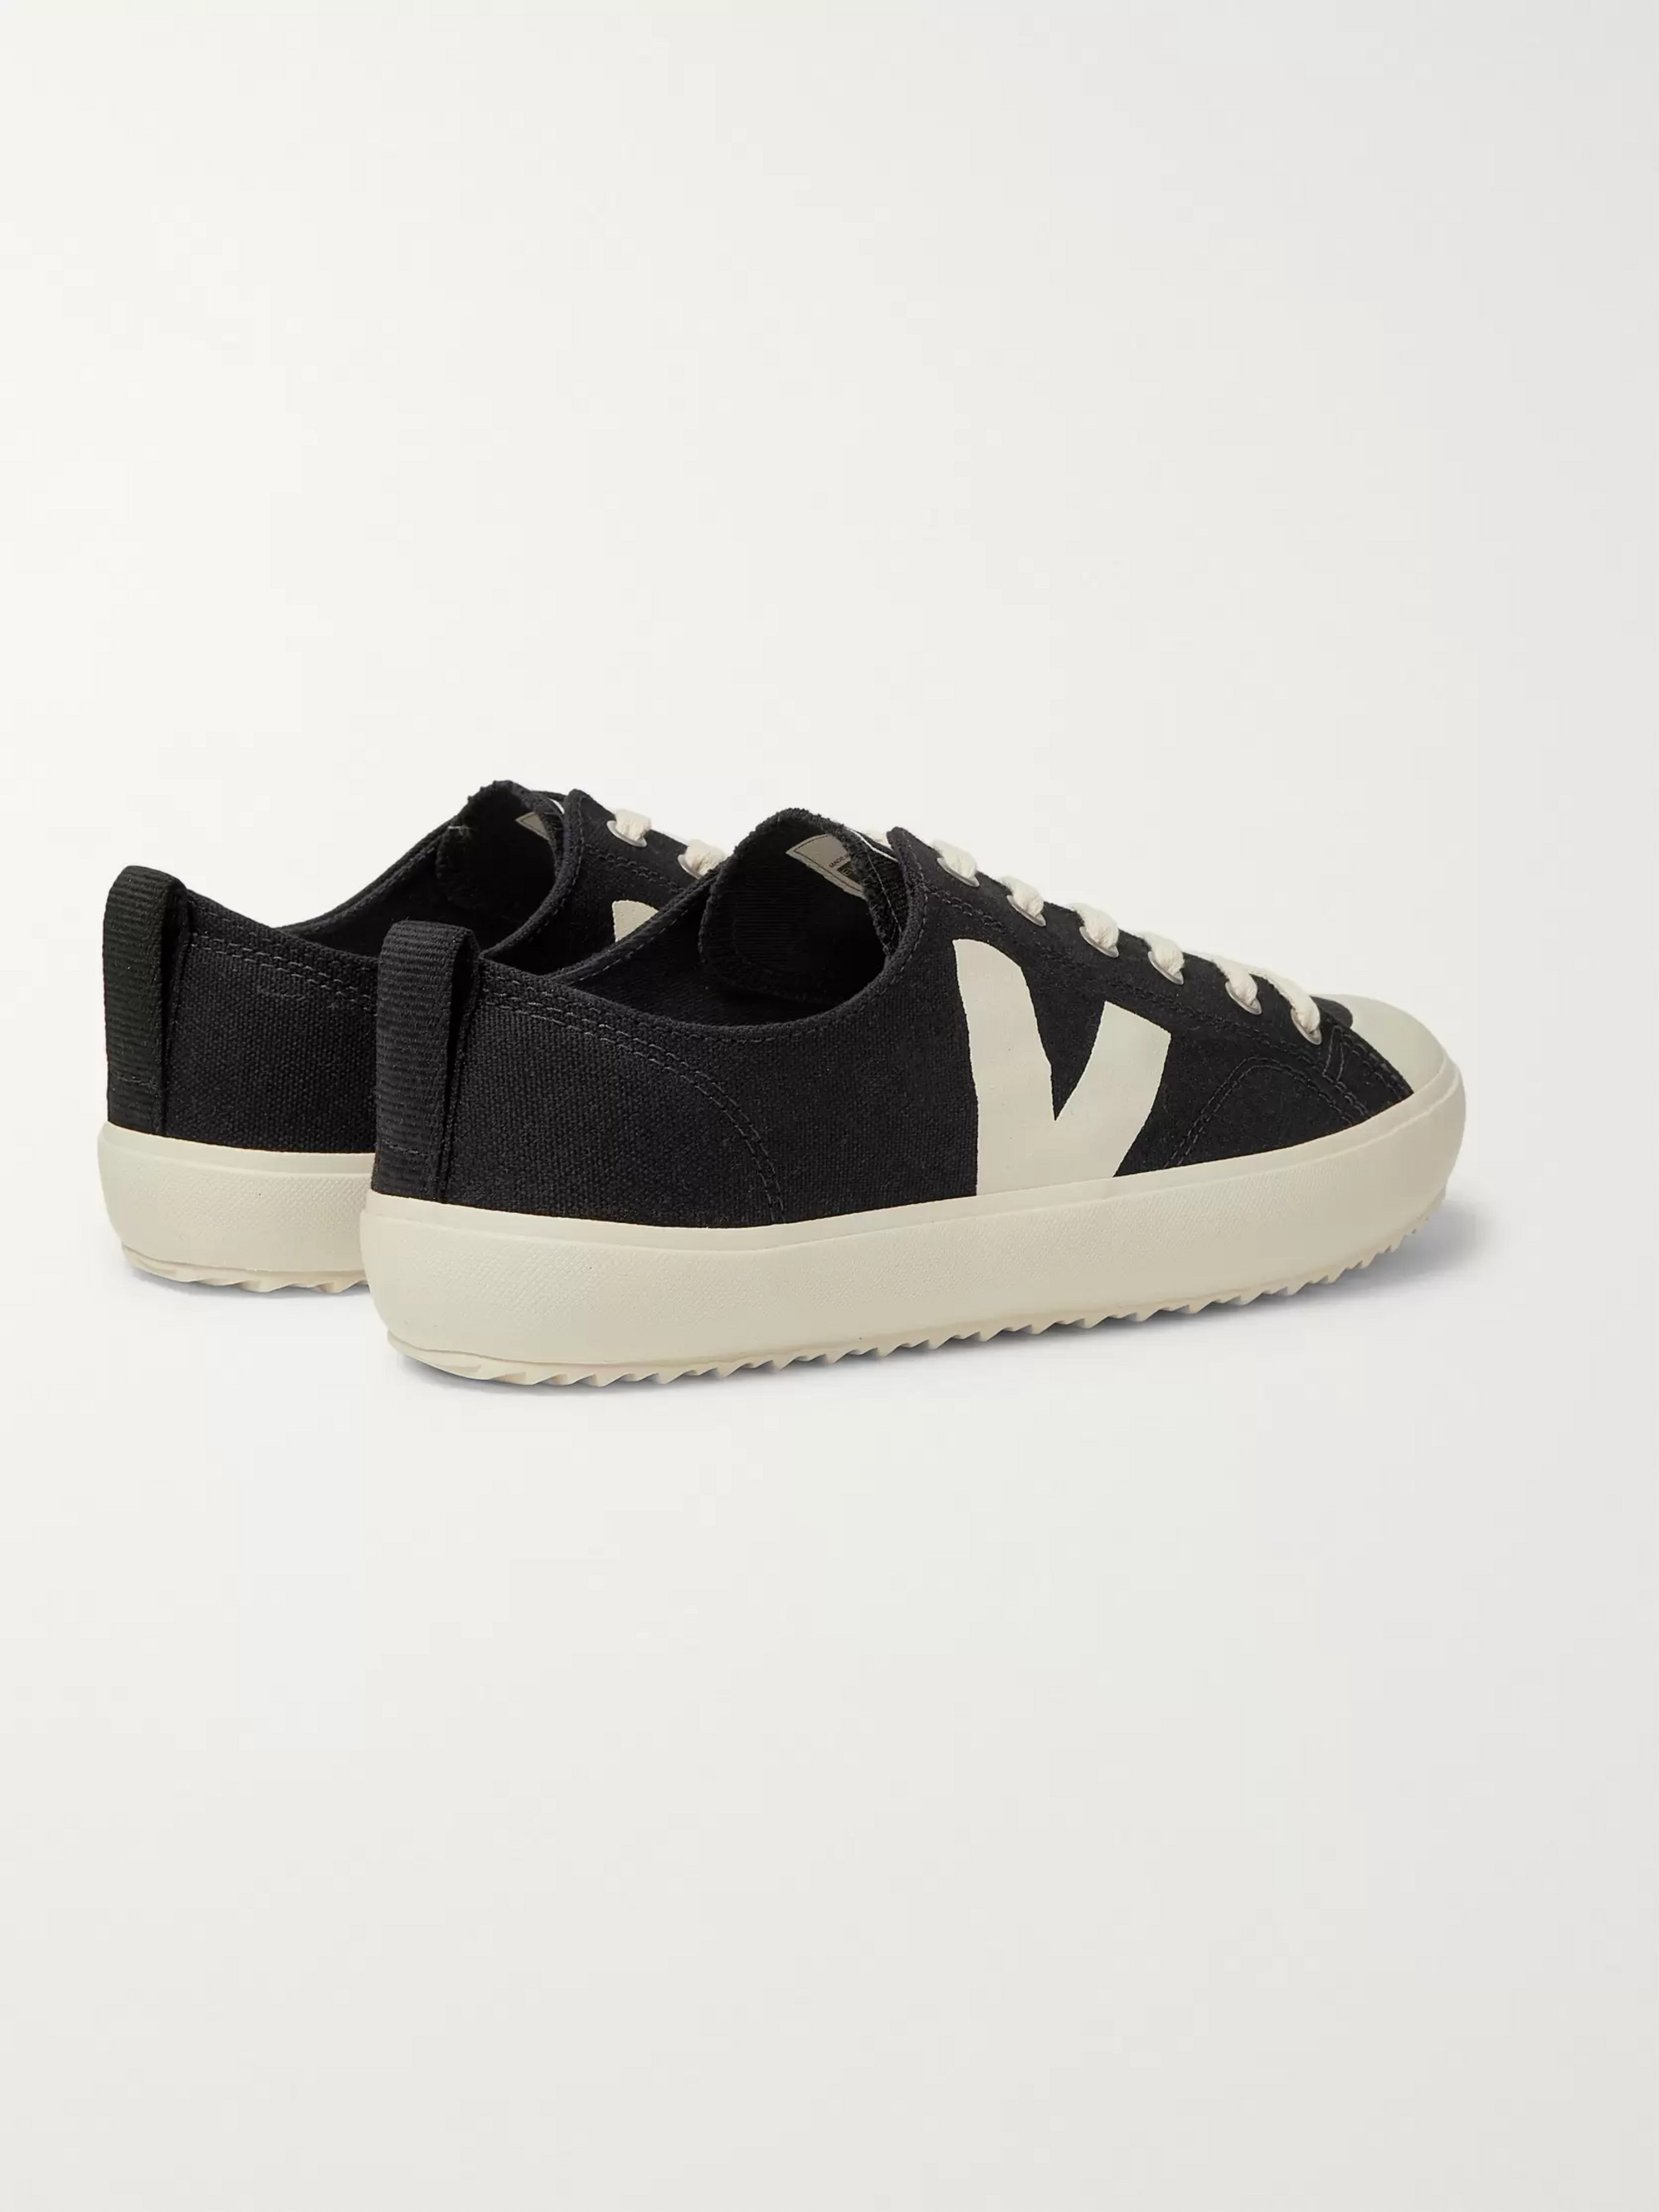 Veja Nova Rubber-Trimmed Organic Cotton-Canvas Sneakers